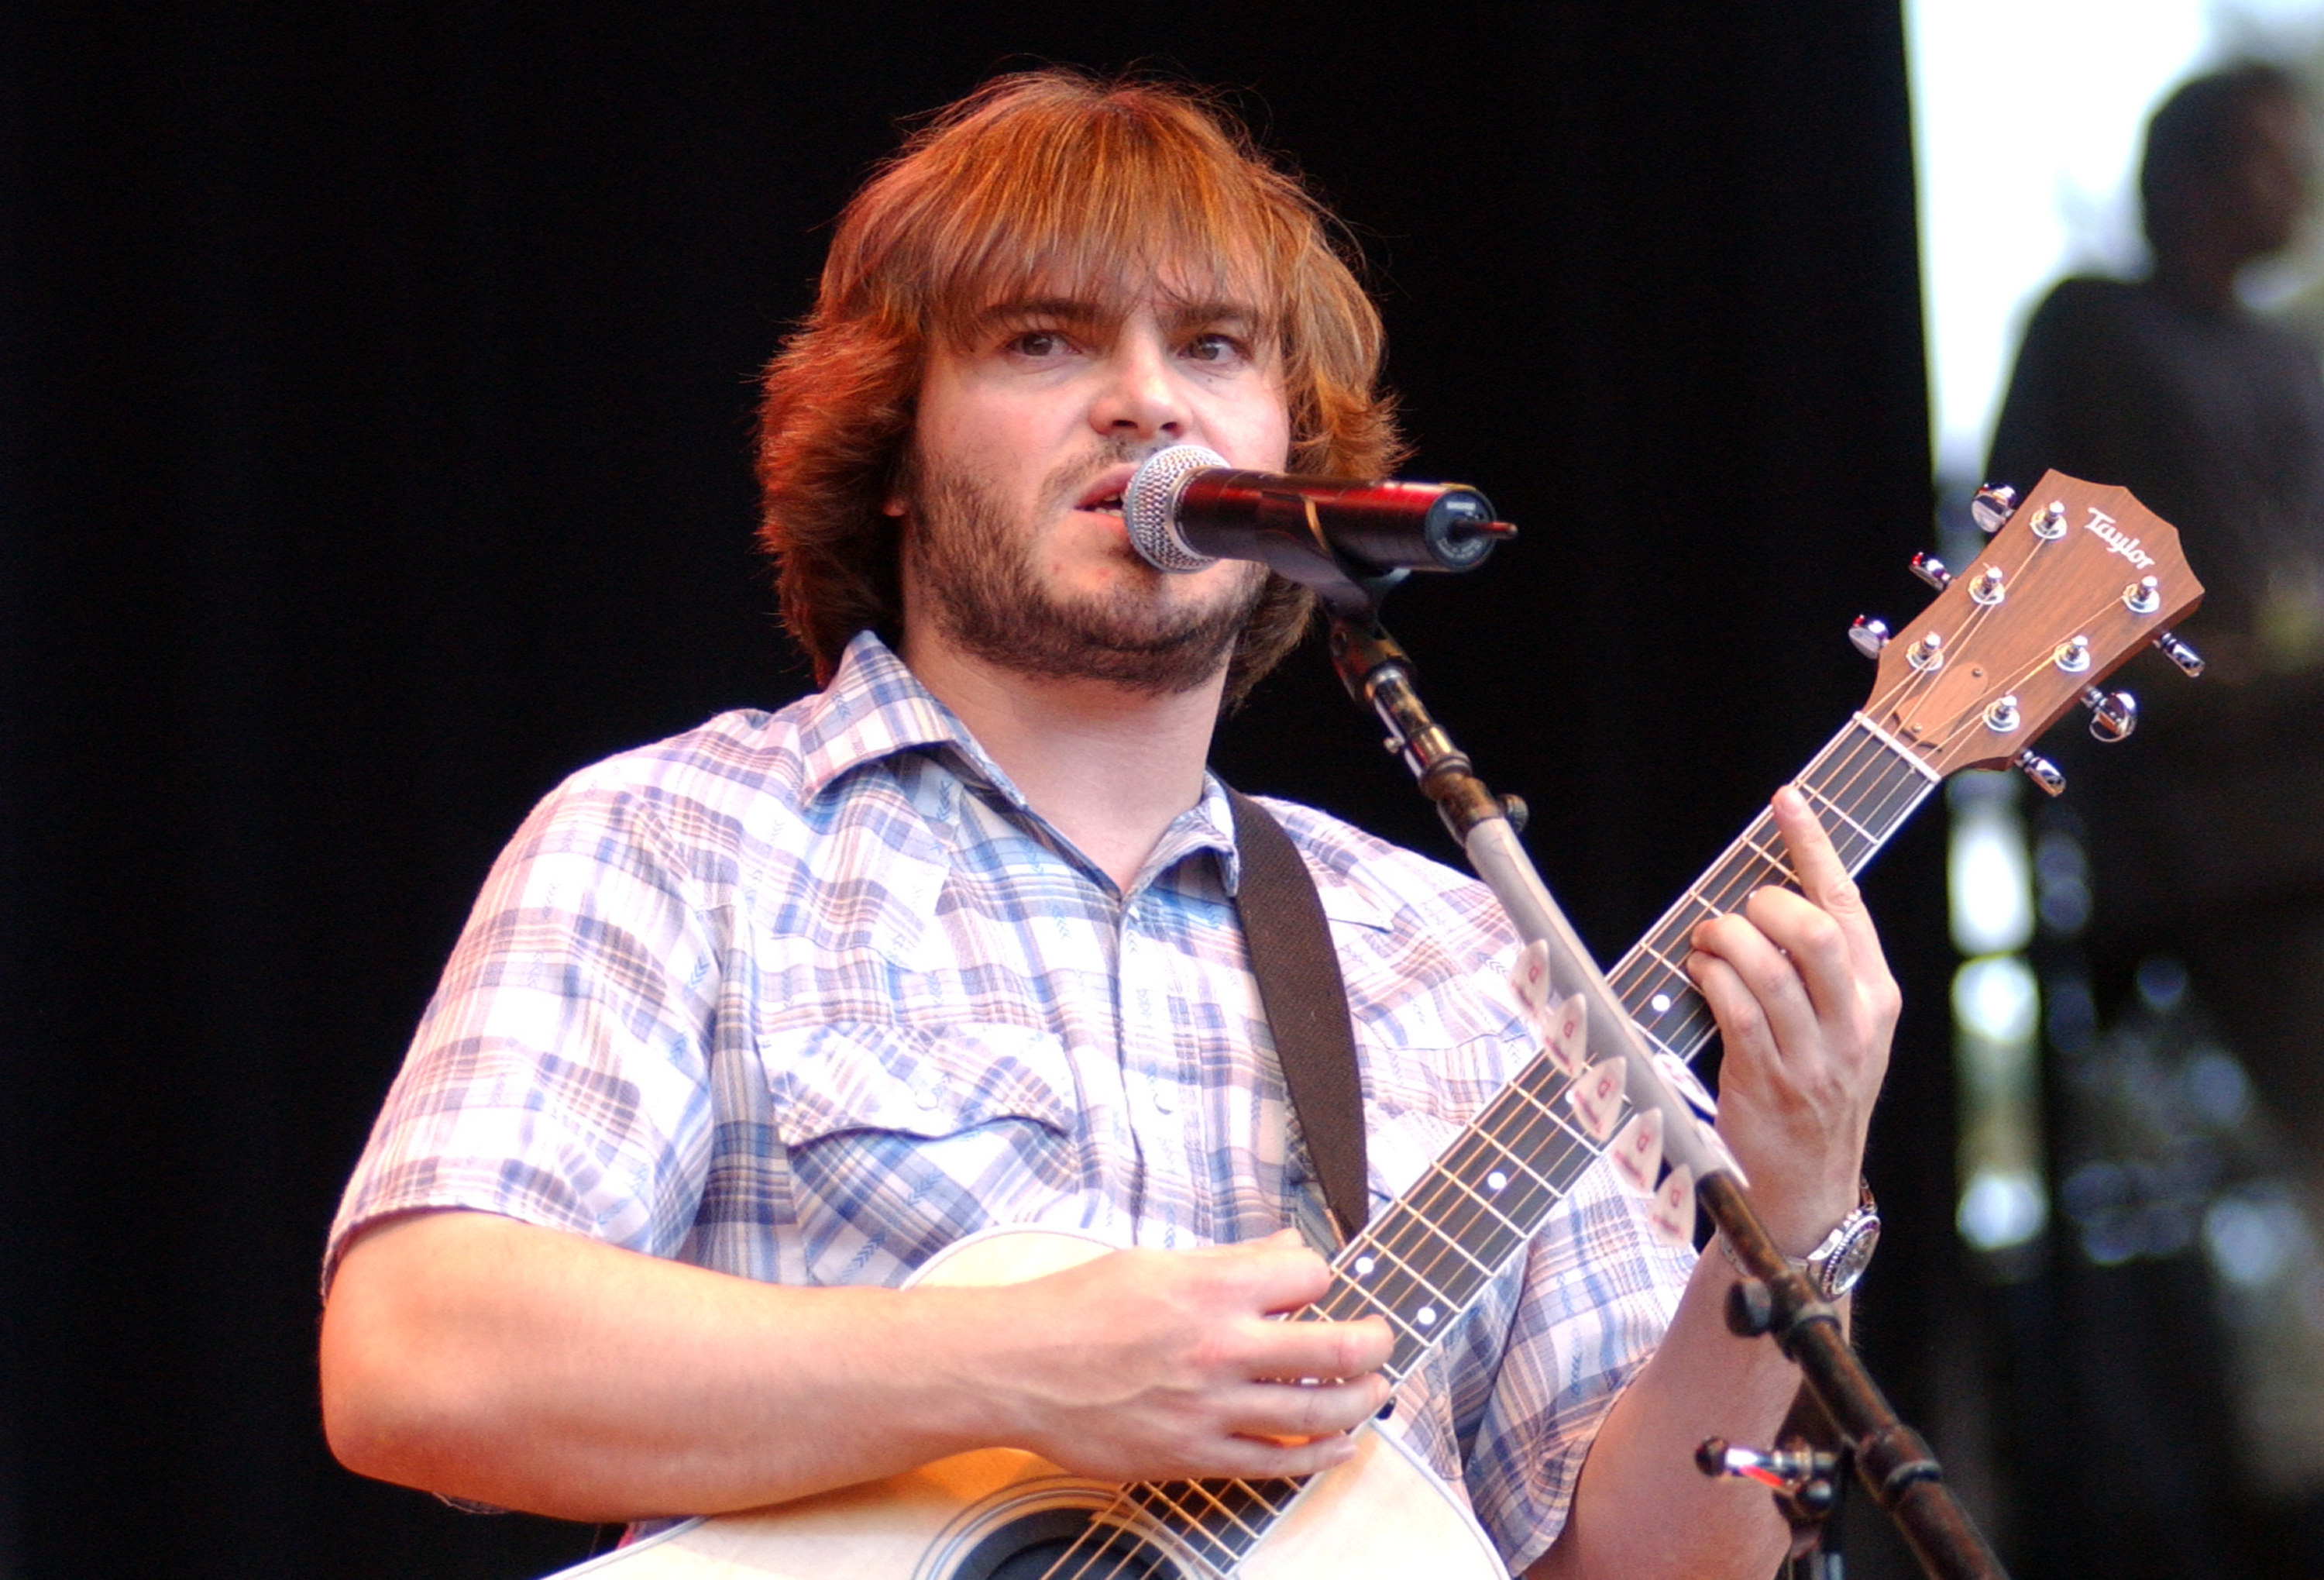 Jack Black performing on stage with a guitar